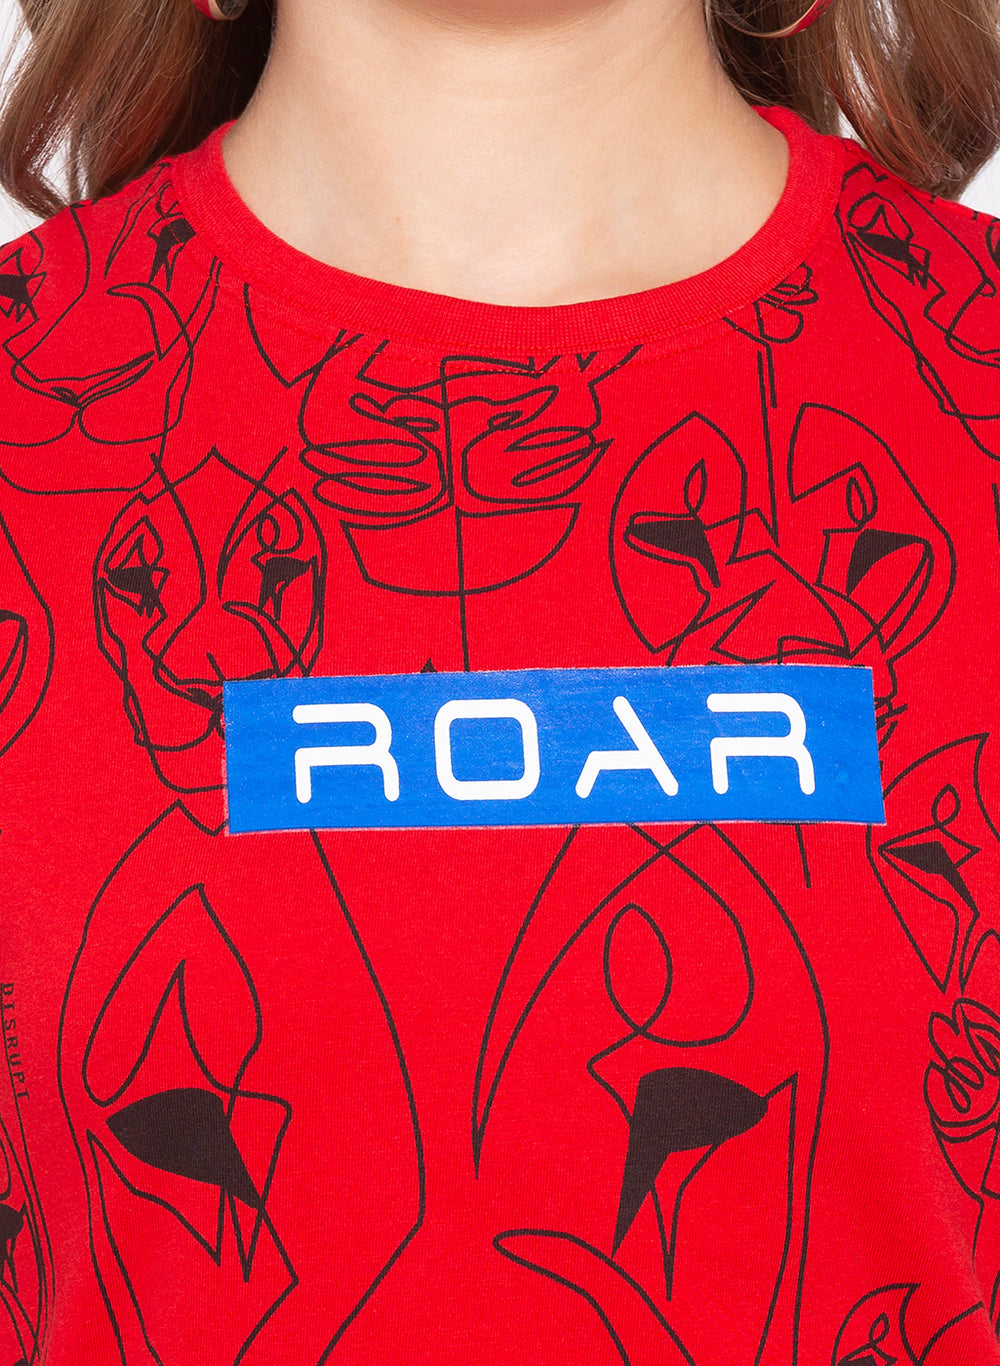 Red Roar Graphic Print Cotton T-shirt For Women's